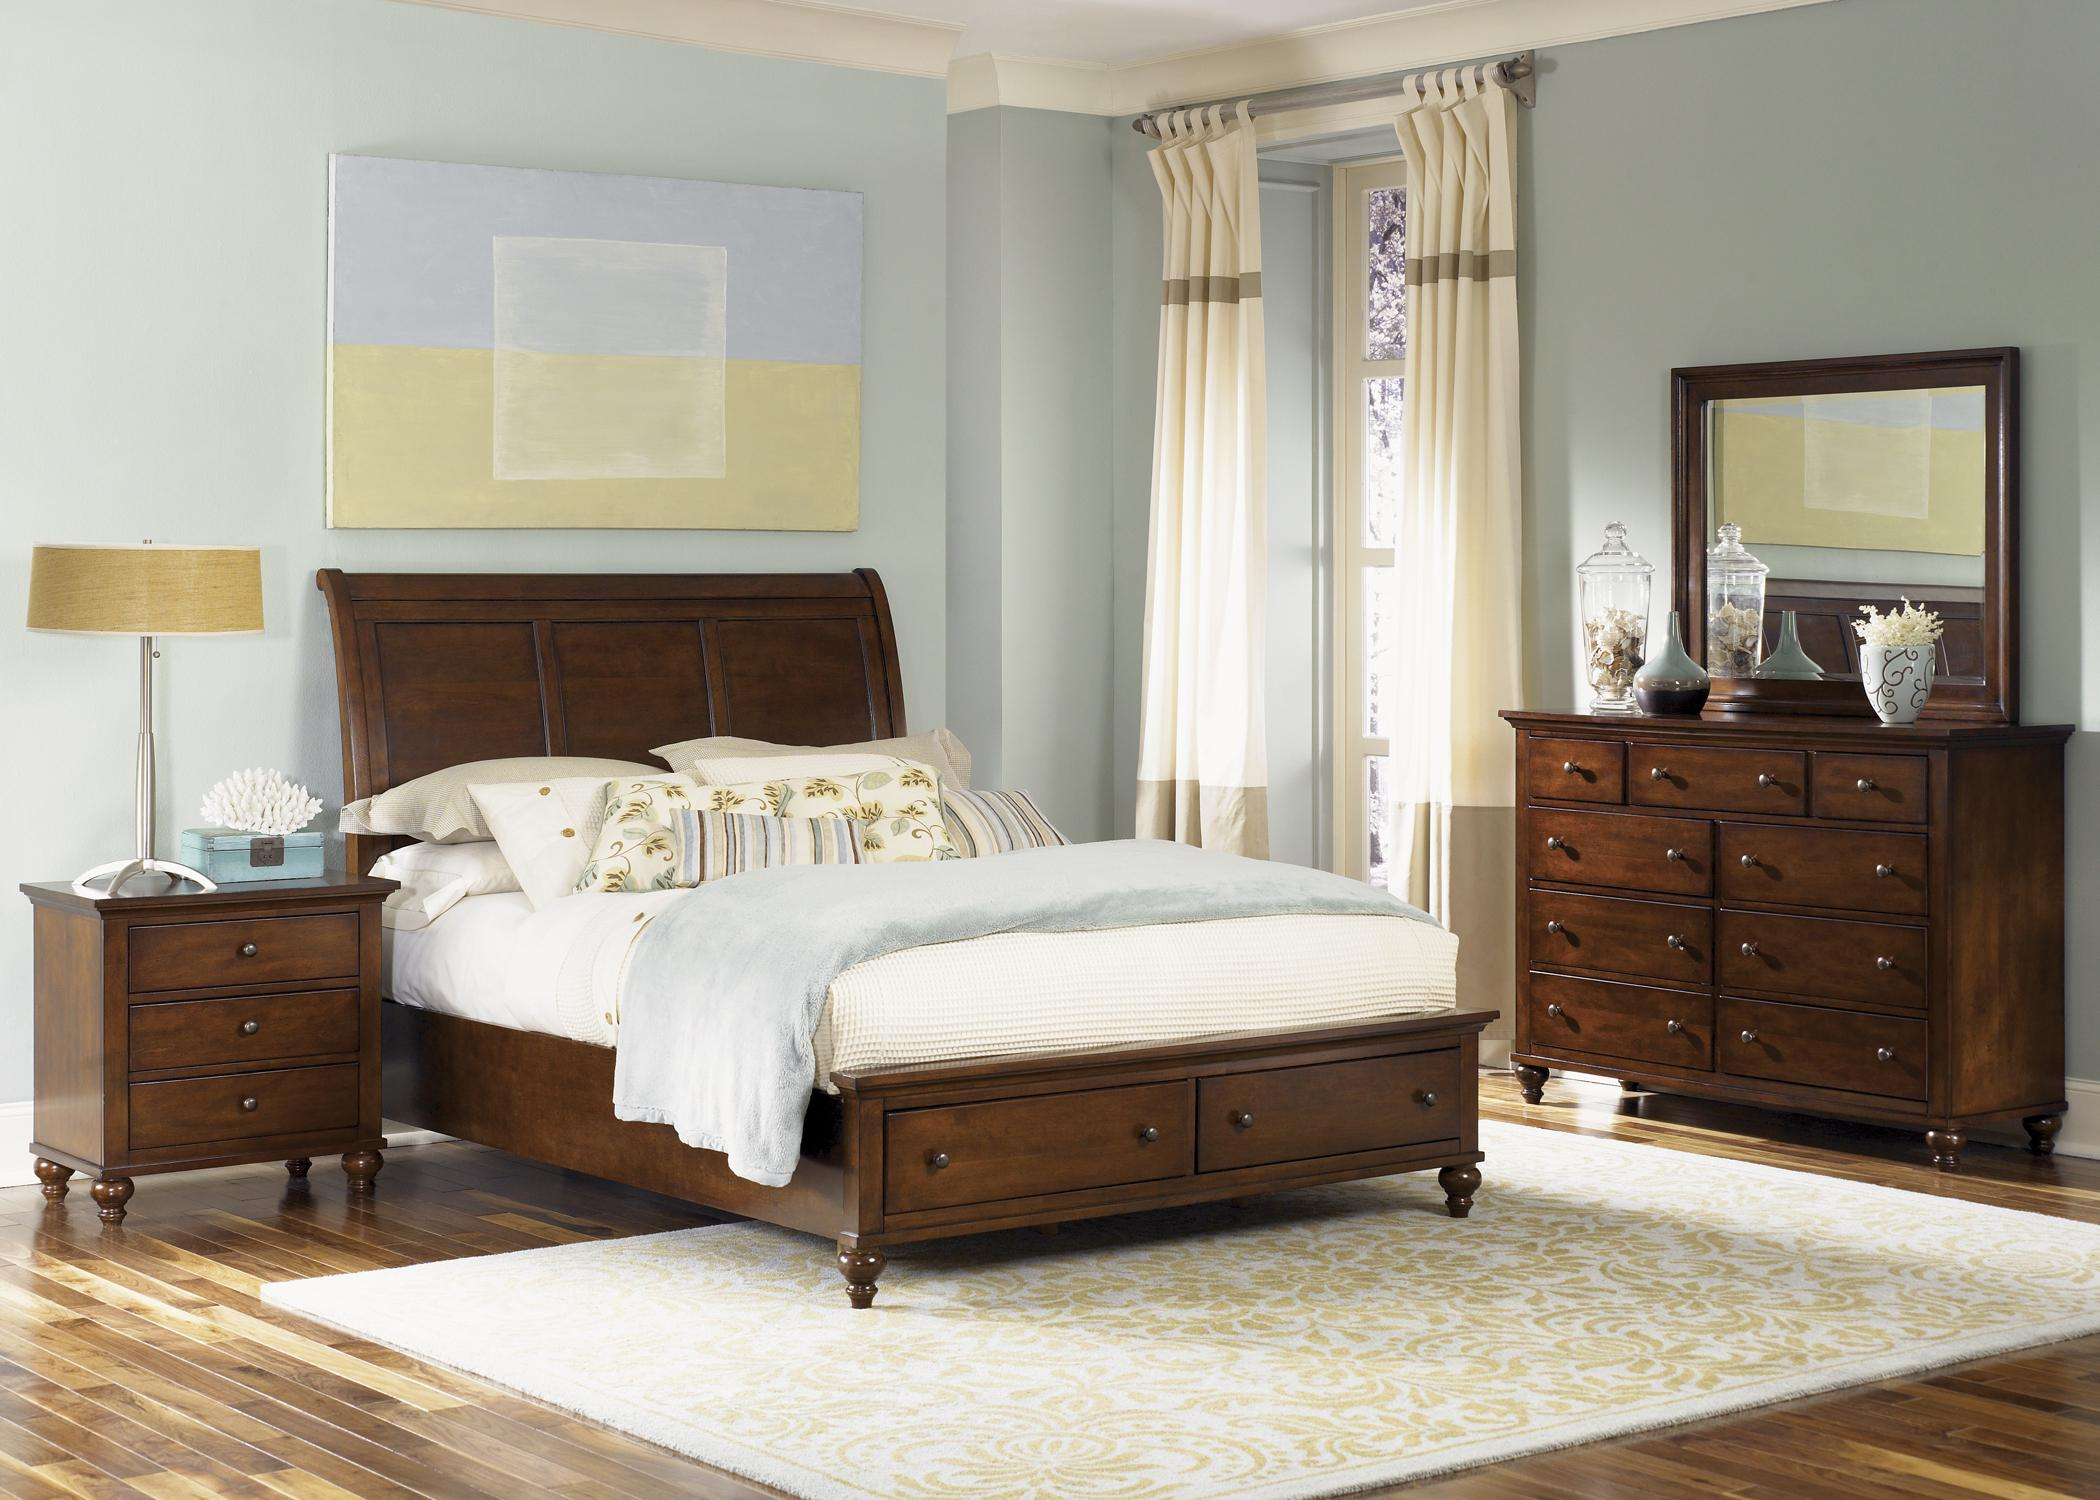 hamilton queen bedroom group by liberty furniture wolf